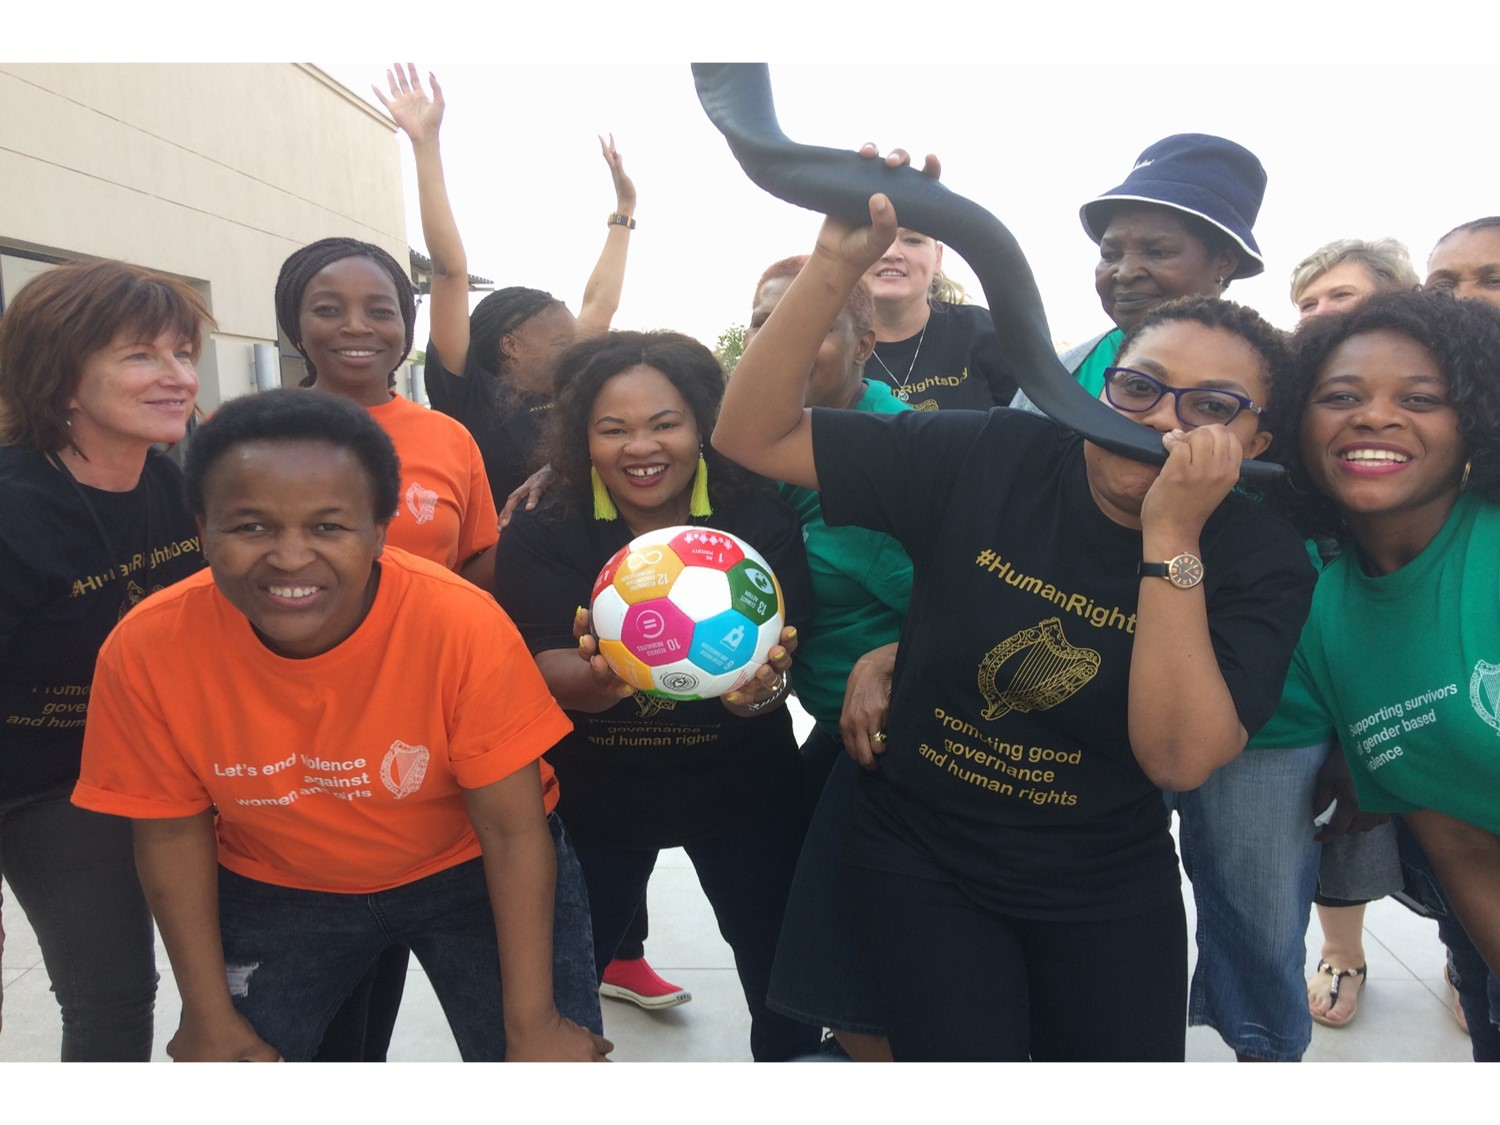 Embassy Team preparing for Global Goals World Cup